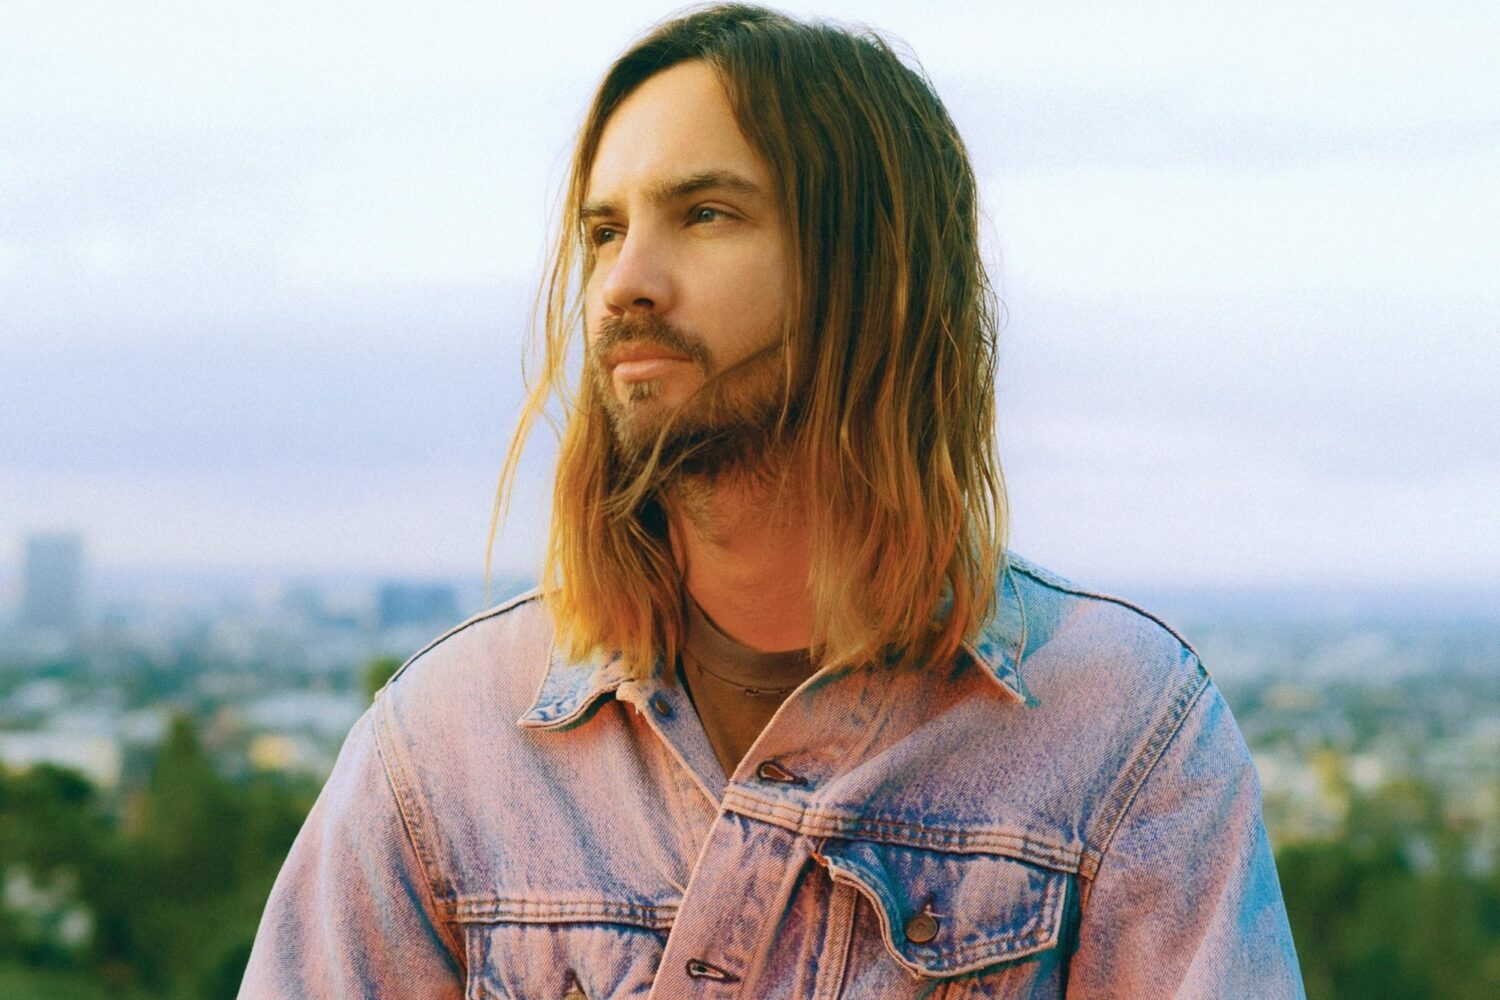 Tracks: Tame Impala, Mark Ronson, Kevin Abstract & more